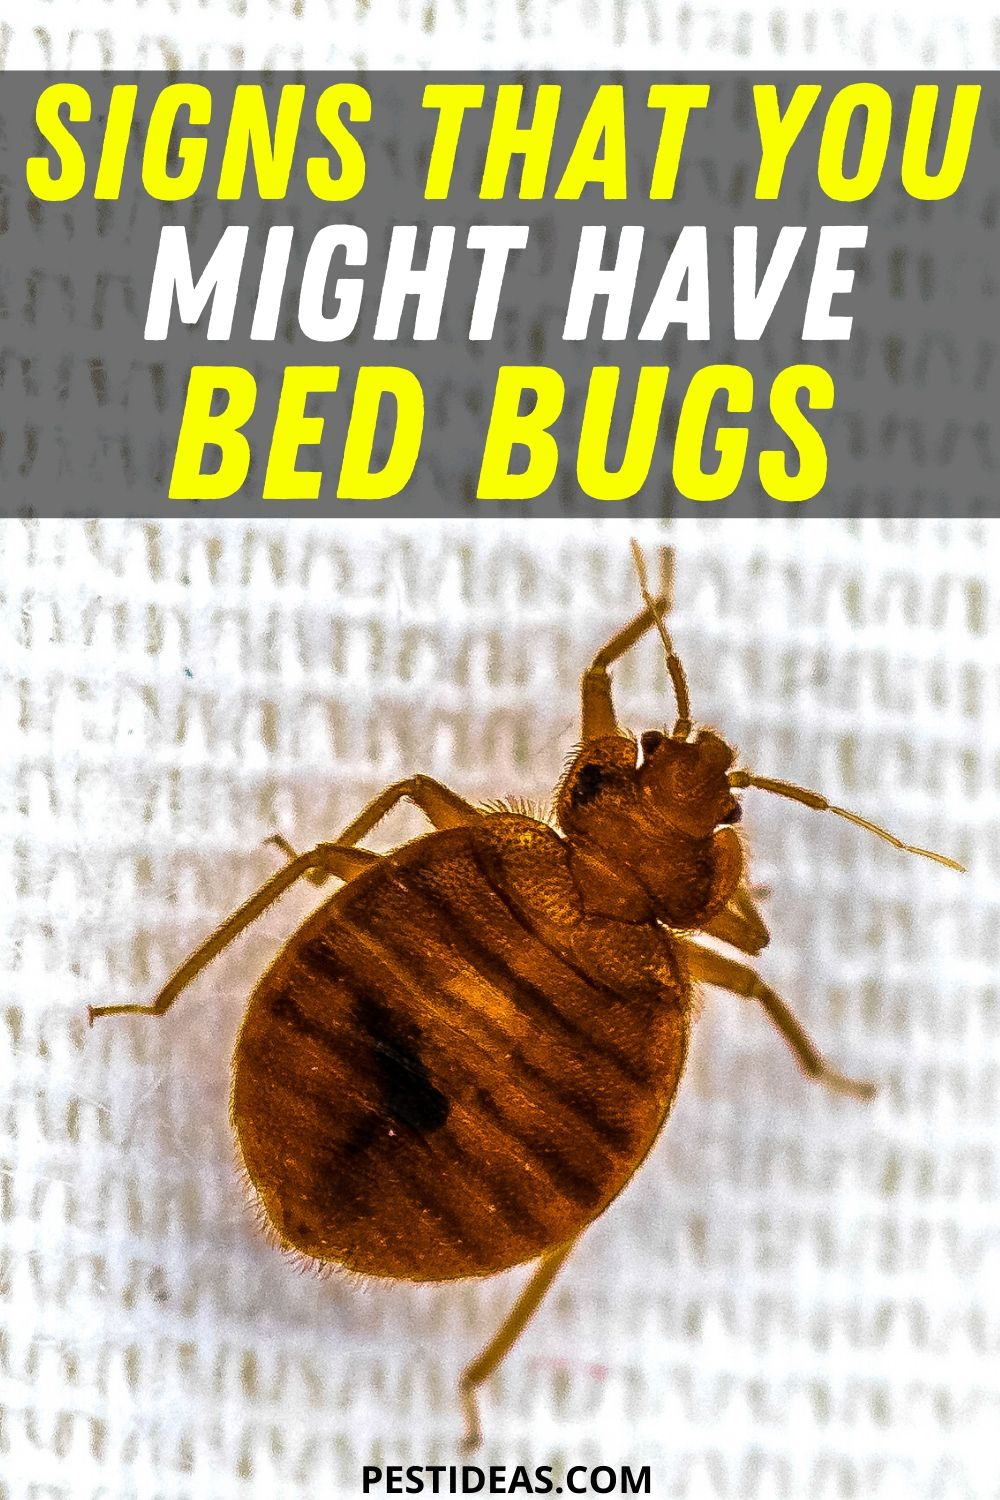 Signs that you might have bed bugs